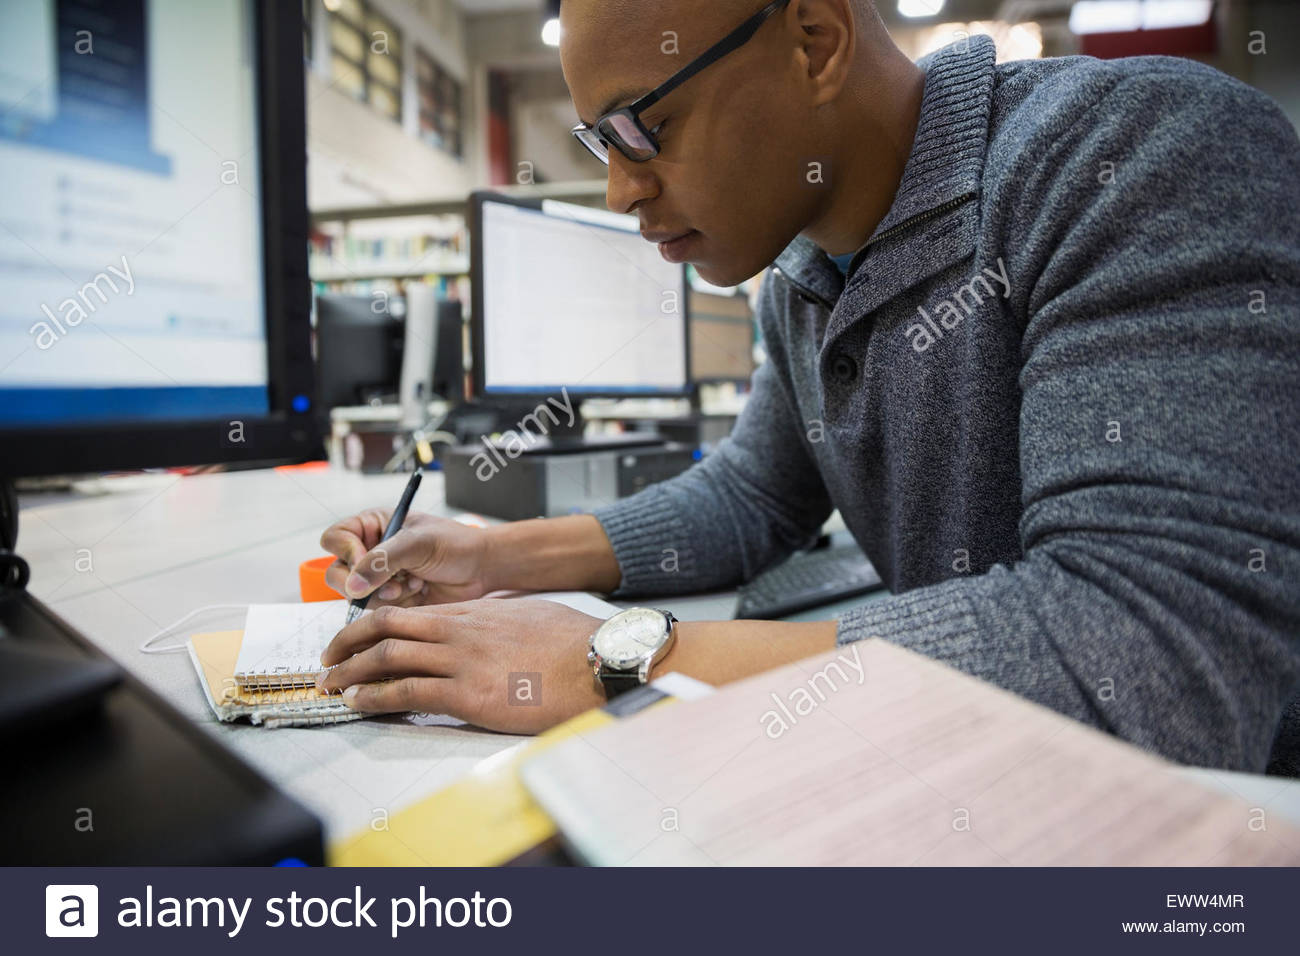 College student studying in library - Stock Image